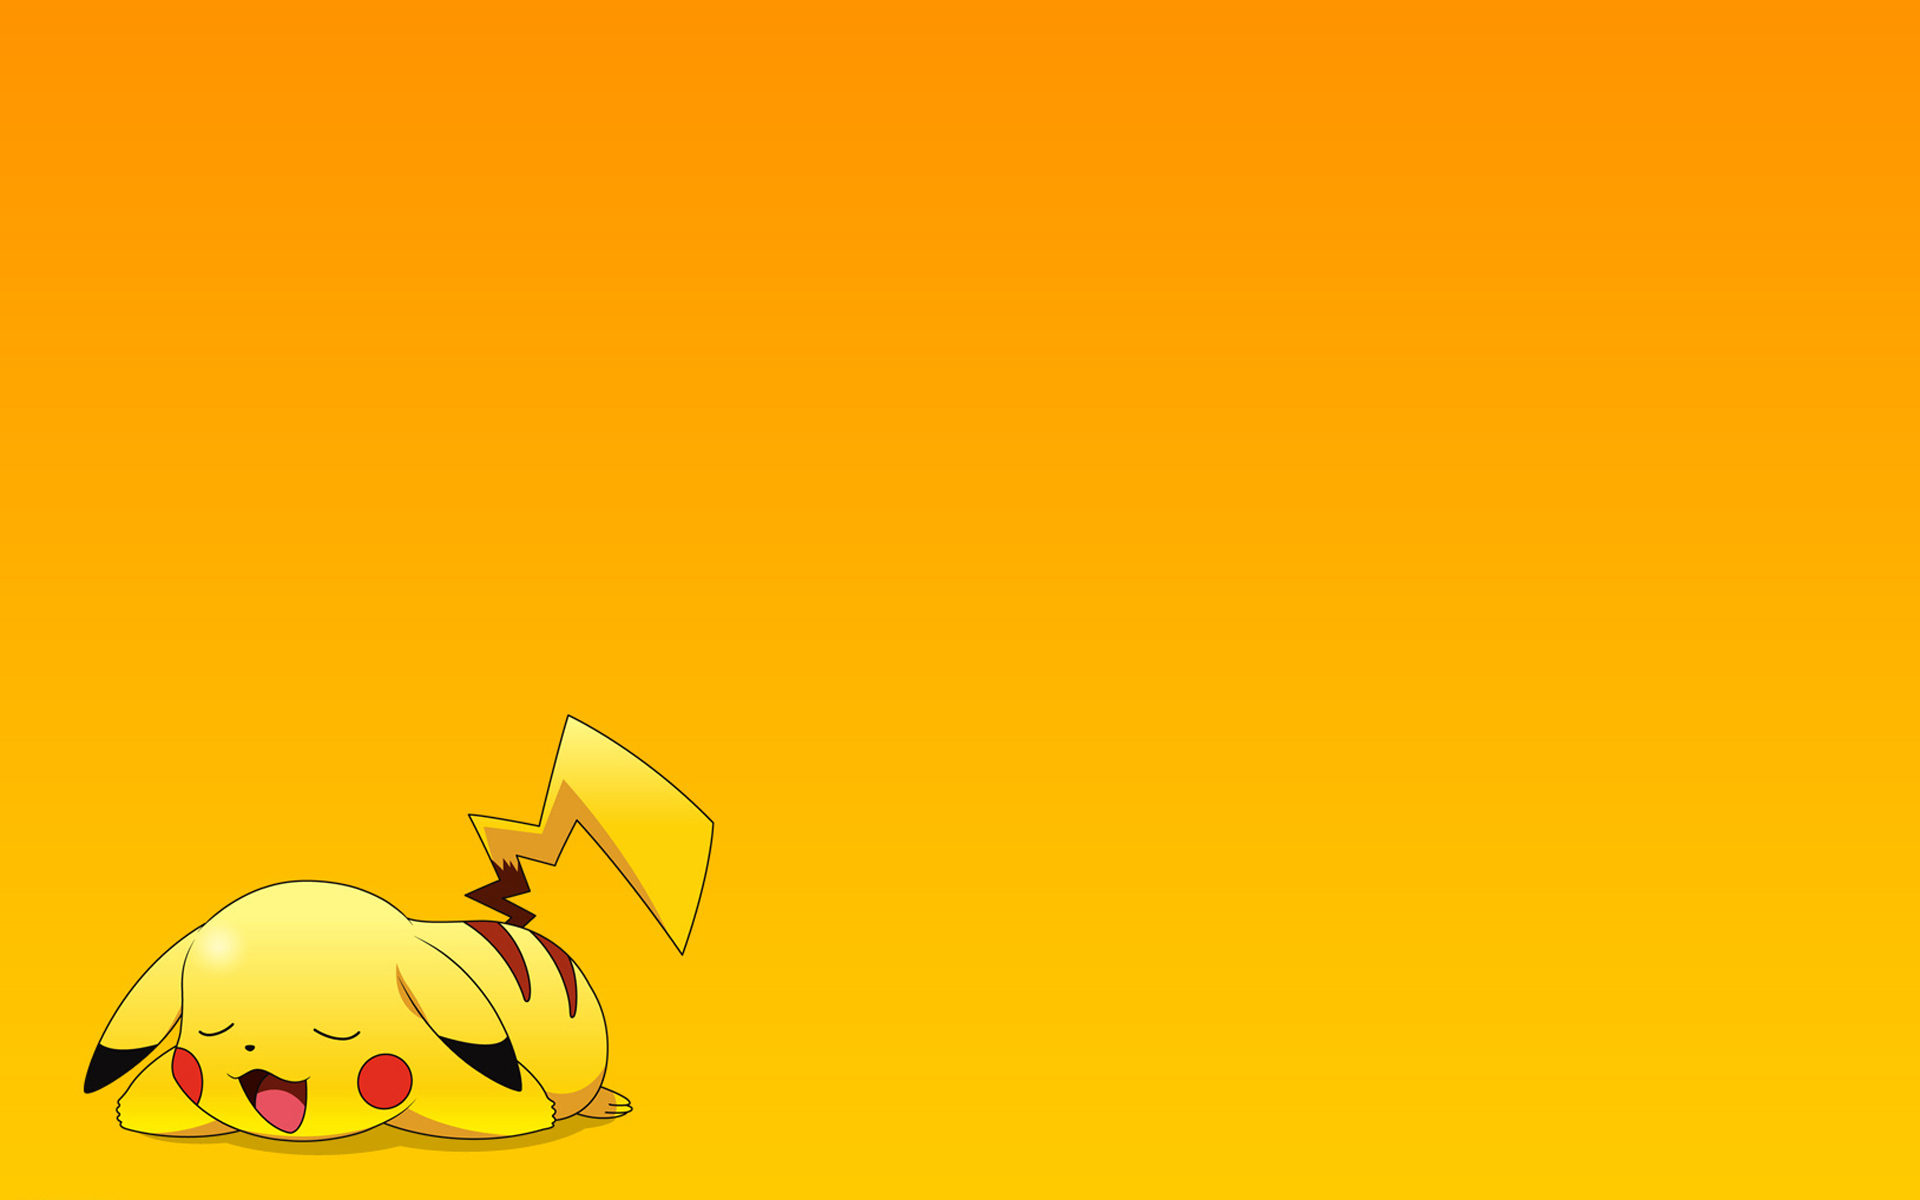 pokemon iphone hd wallpapers Desktop Backgrounds for HD 1920x1200